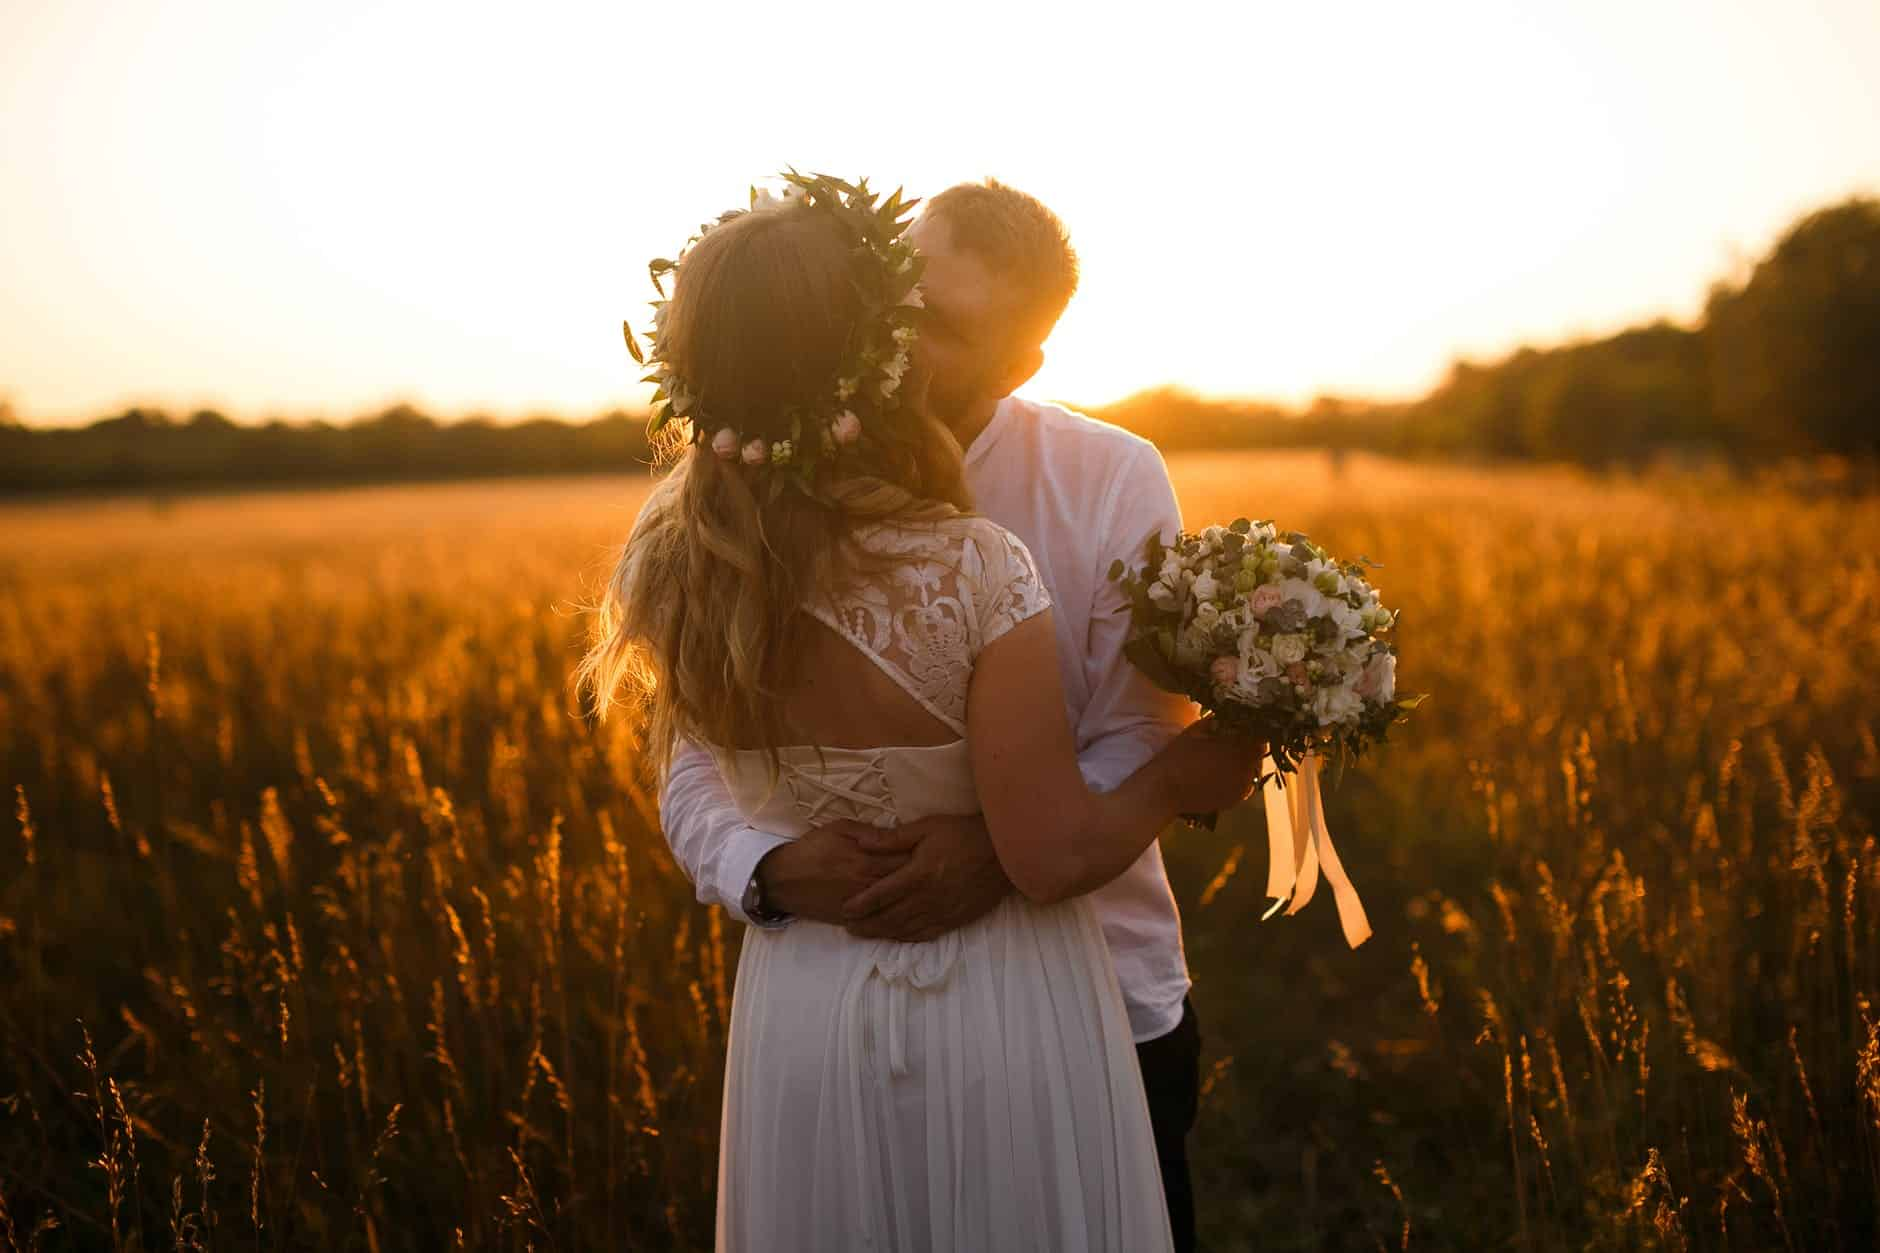 man and woman standing in front of brown grass field kissing each other